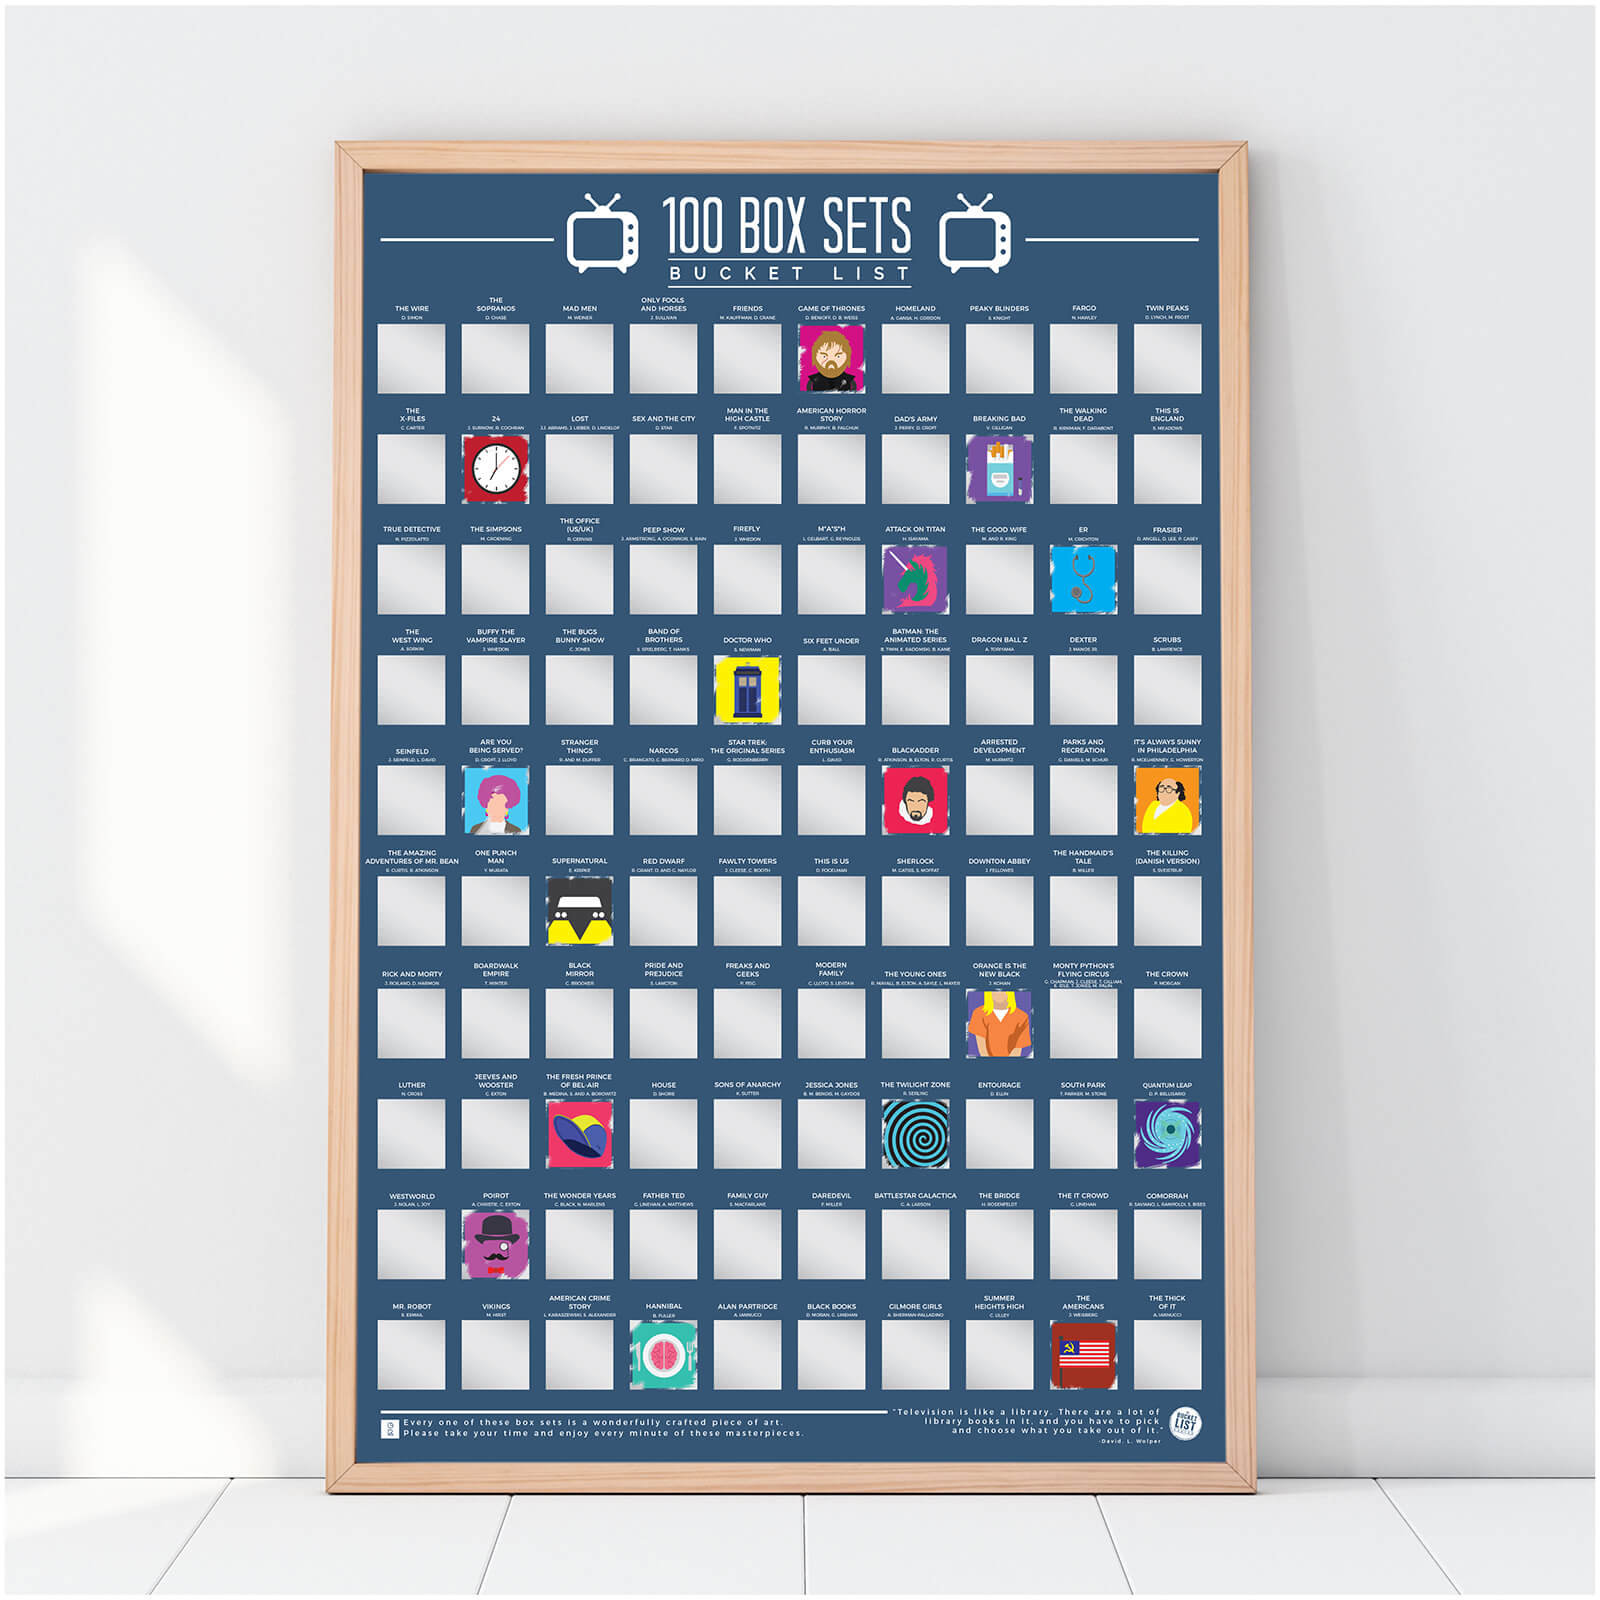 Image of 100 Box Sets Bucket List Poster